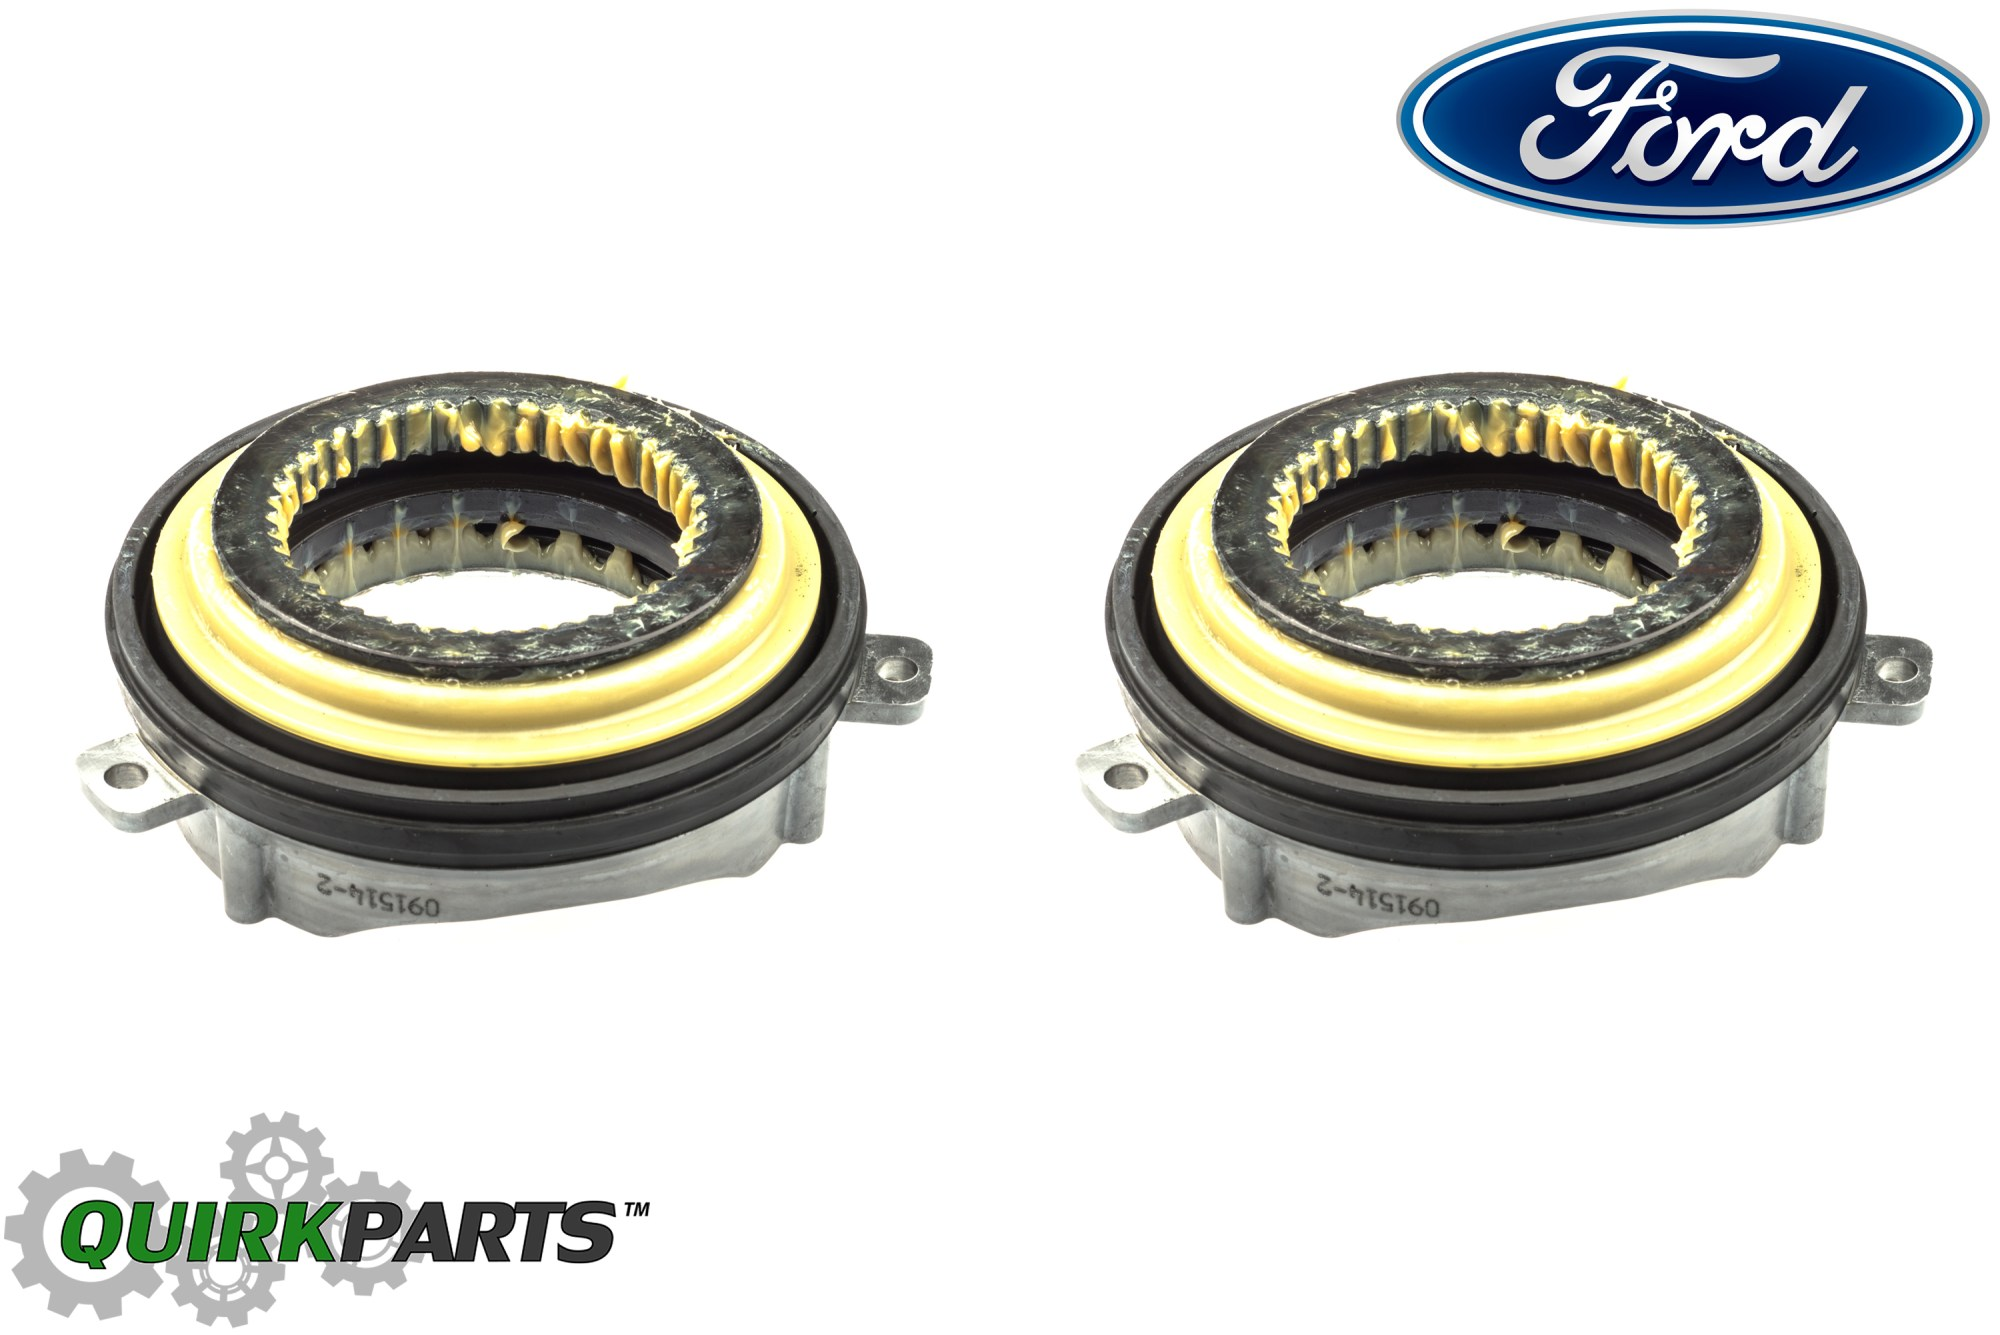 hight resolution of details about ford f150 expedition navigator 4wd 4x4 front axle auto locking hub actuators oem